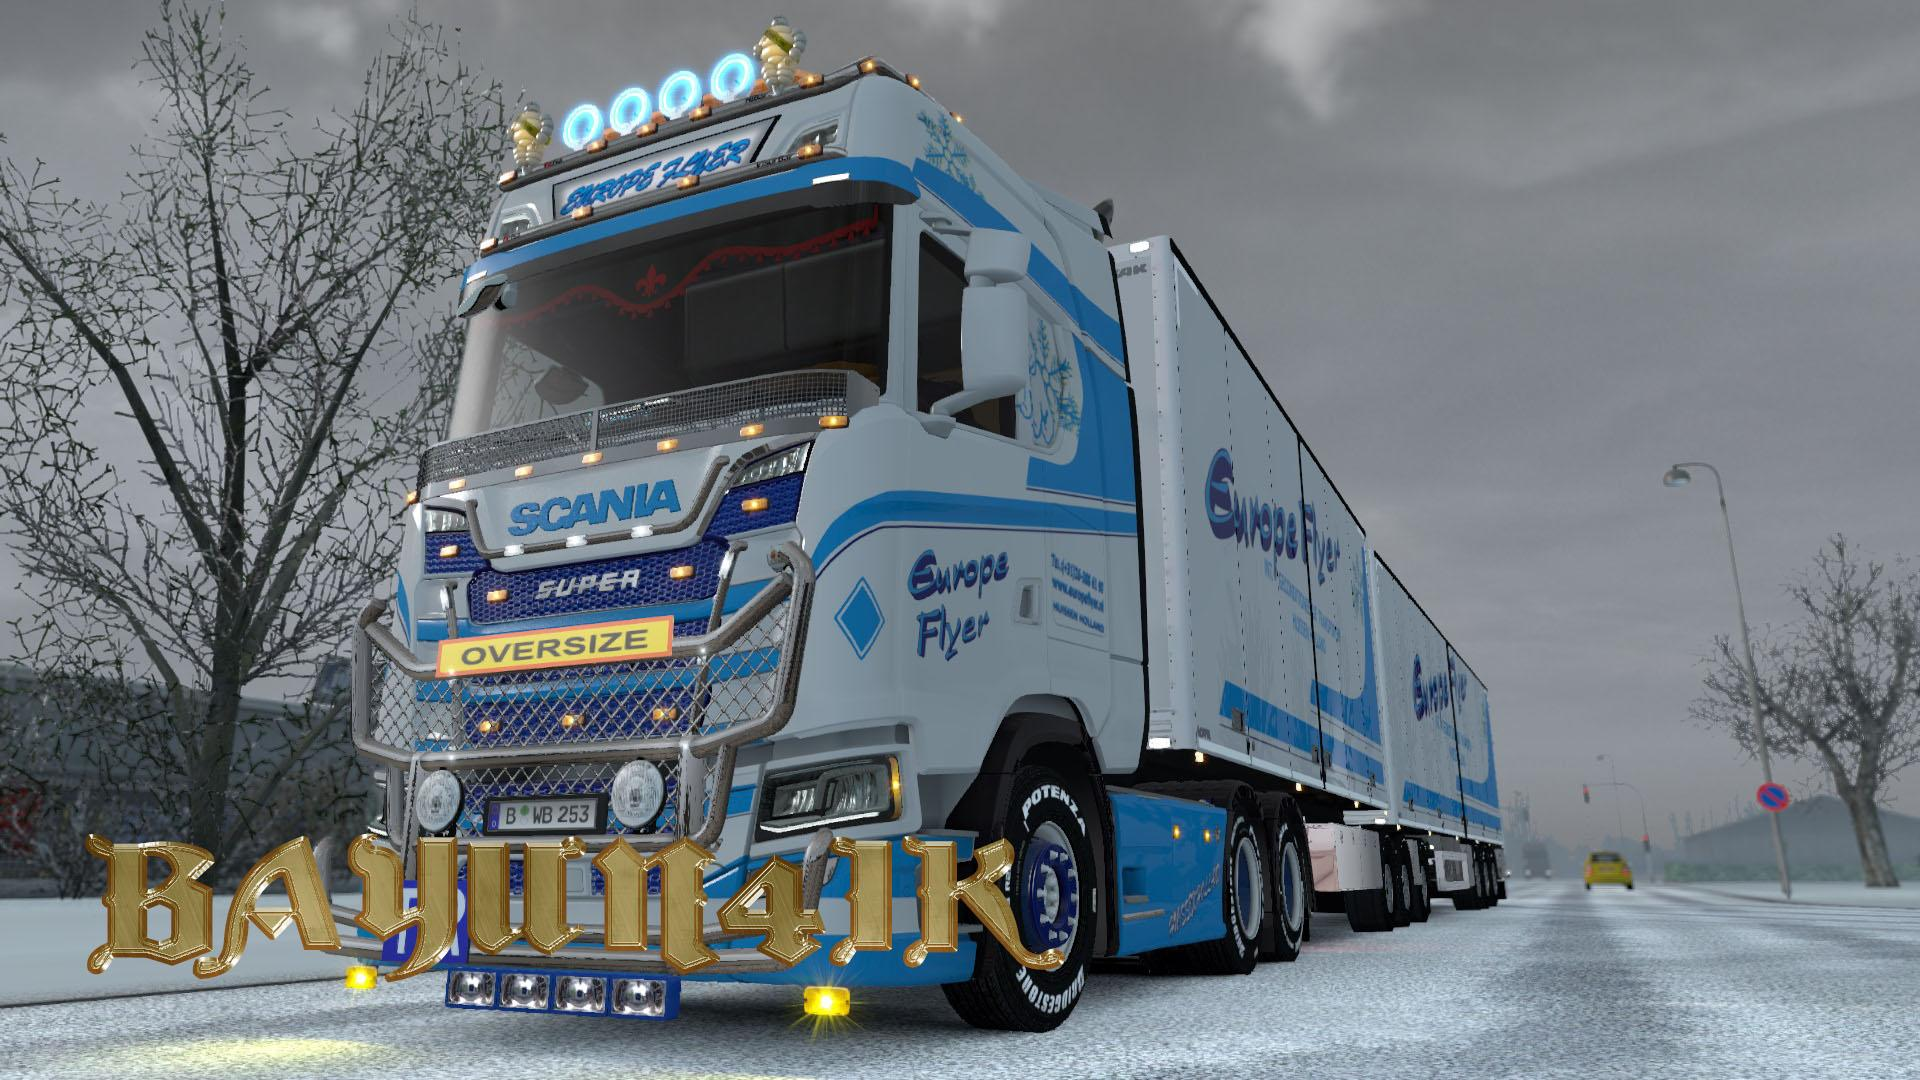 SCANIA S 2016 SCS EUROPE FLYER TRUCK SKIN PACK 130 Euro